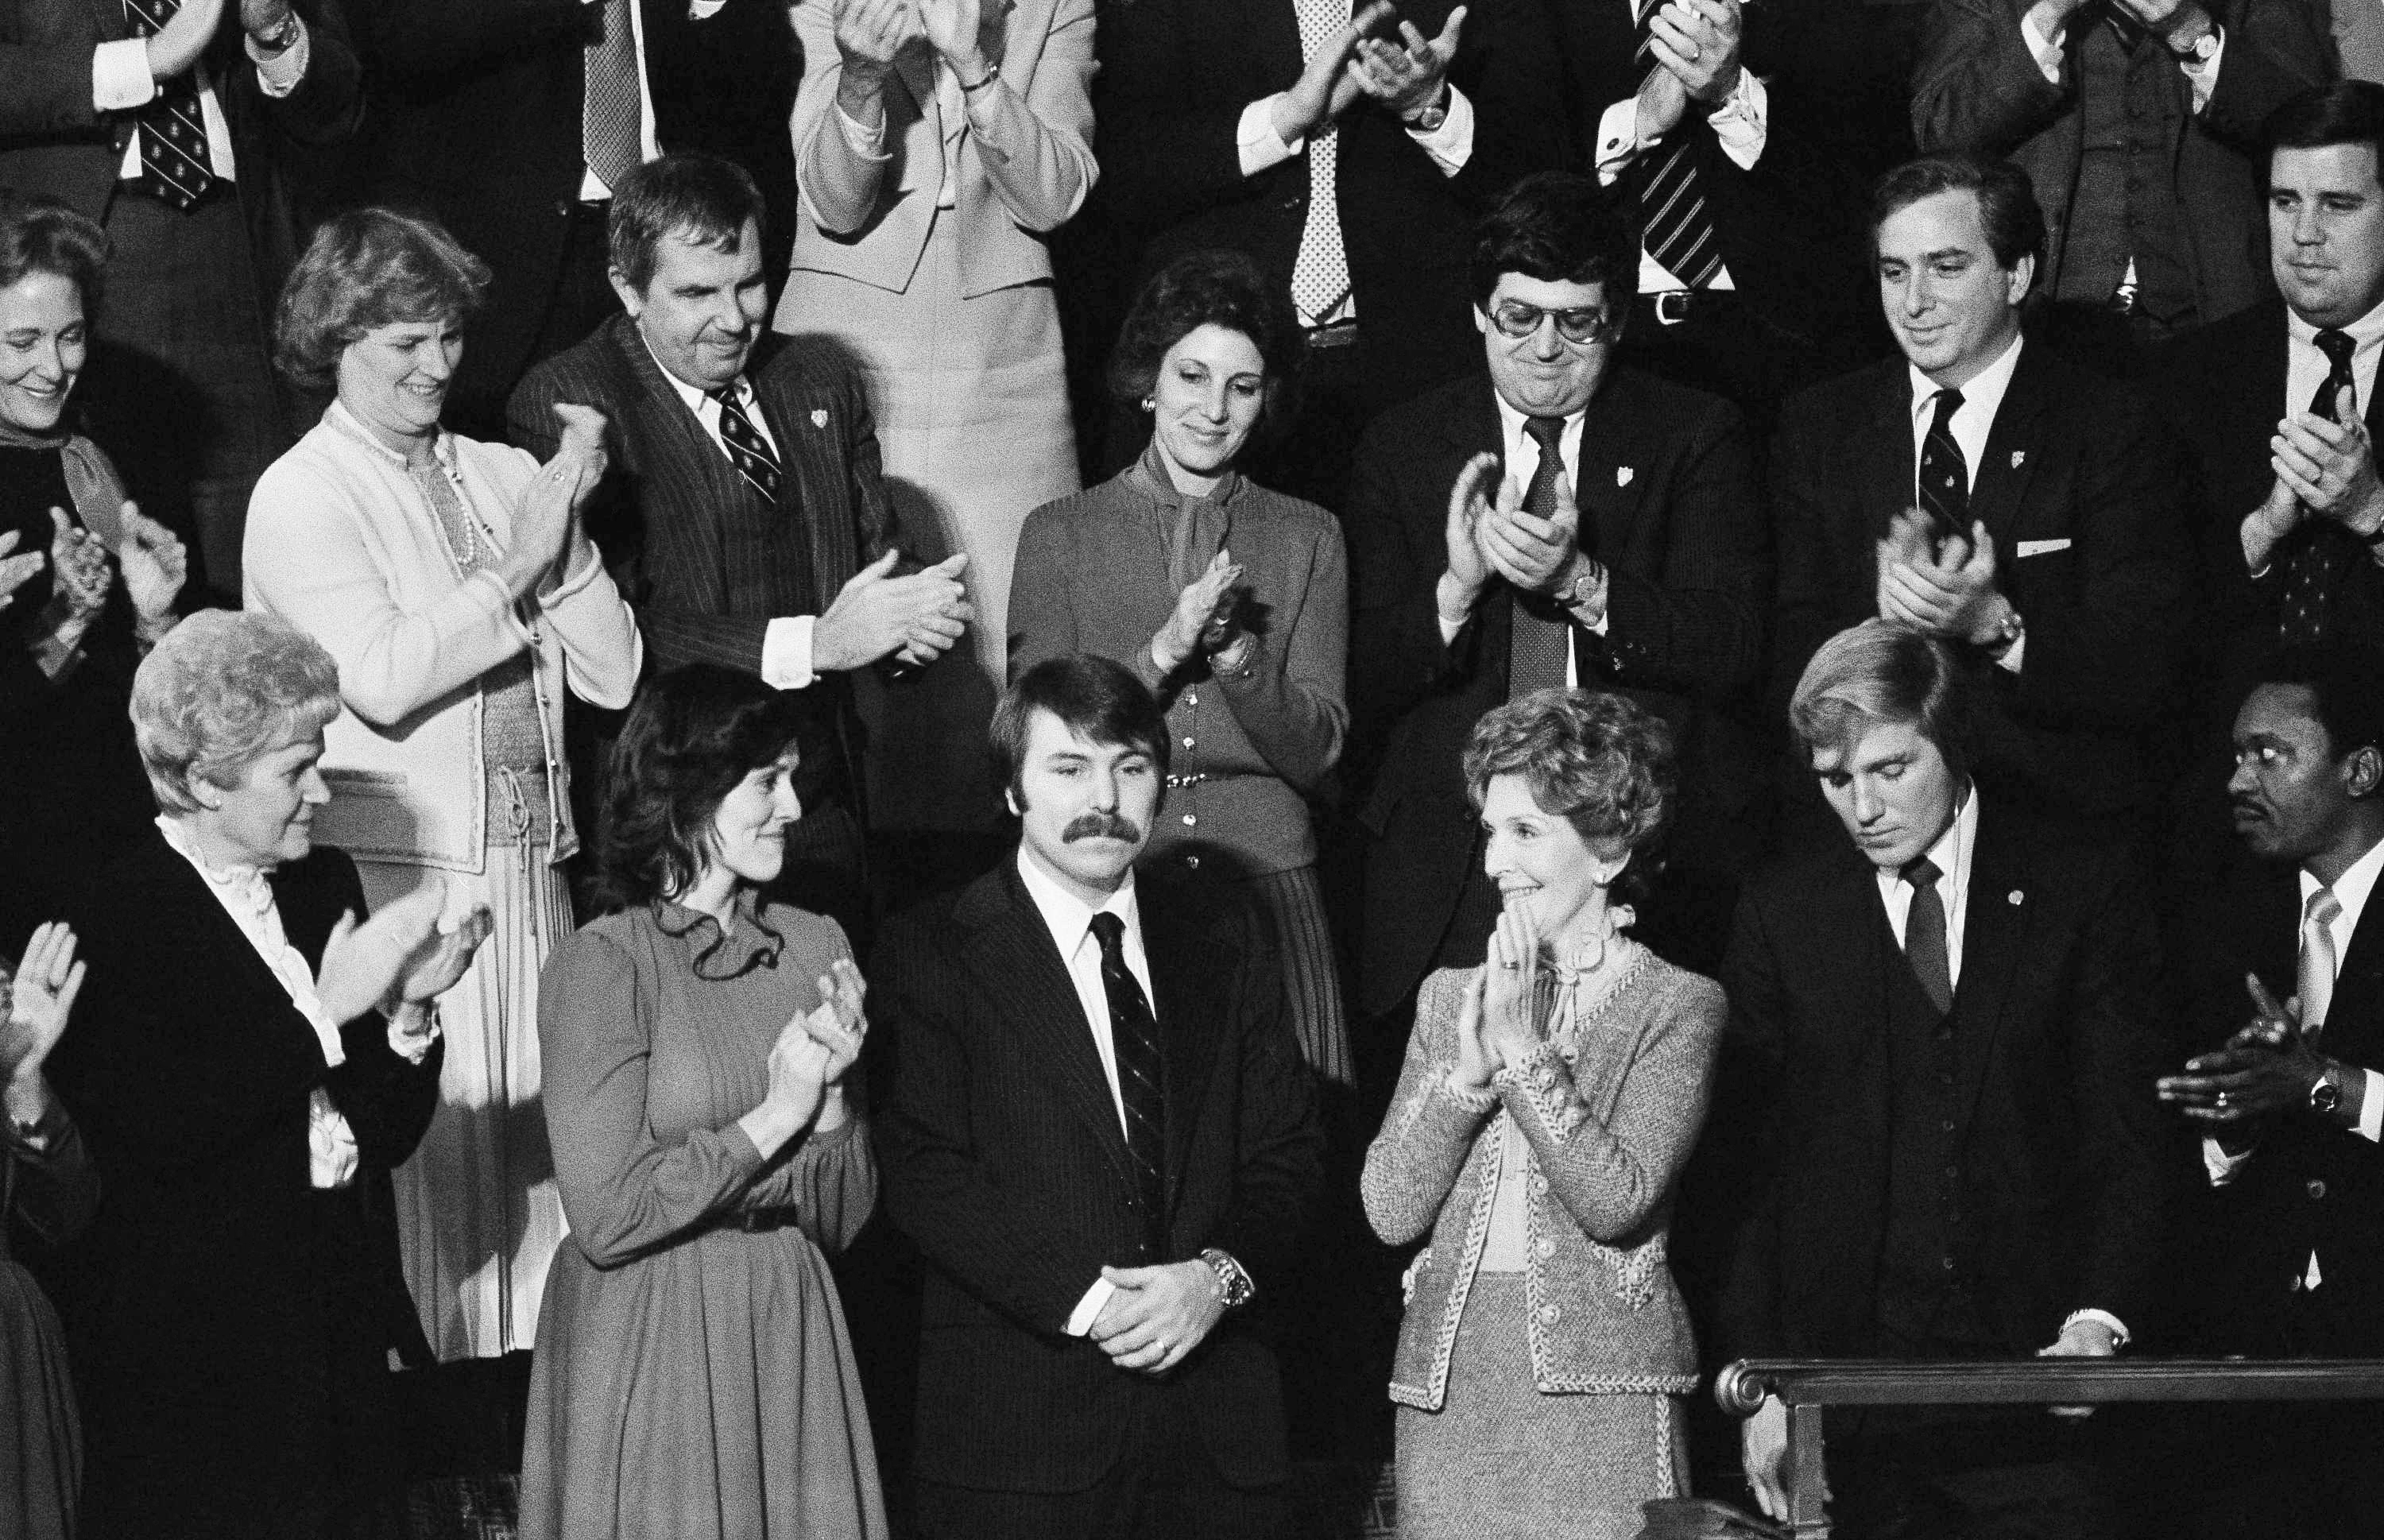 Lenny Skutnik, who jumped into the Potomac River to save one of the passengers aboard an Air Florida jetliner that had crashed there on January 13, 1982, receives applause during Ronald Reagan's State of the Union address on Jan. 27, 1982.